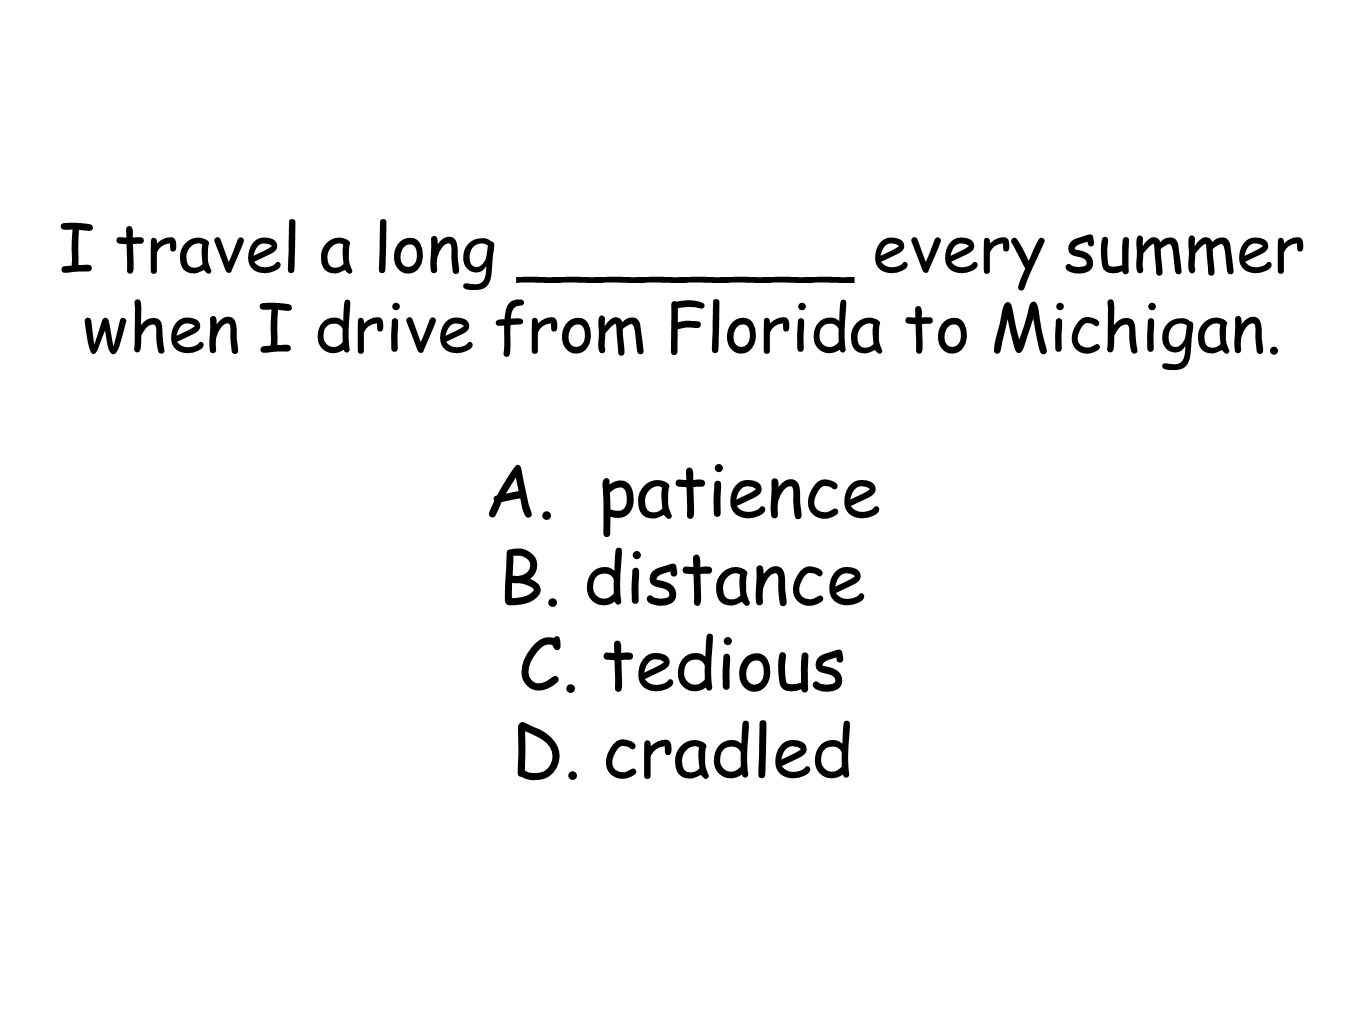 I travel a long ________ every summer when I drive from Florida to Michigan.